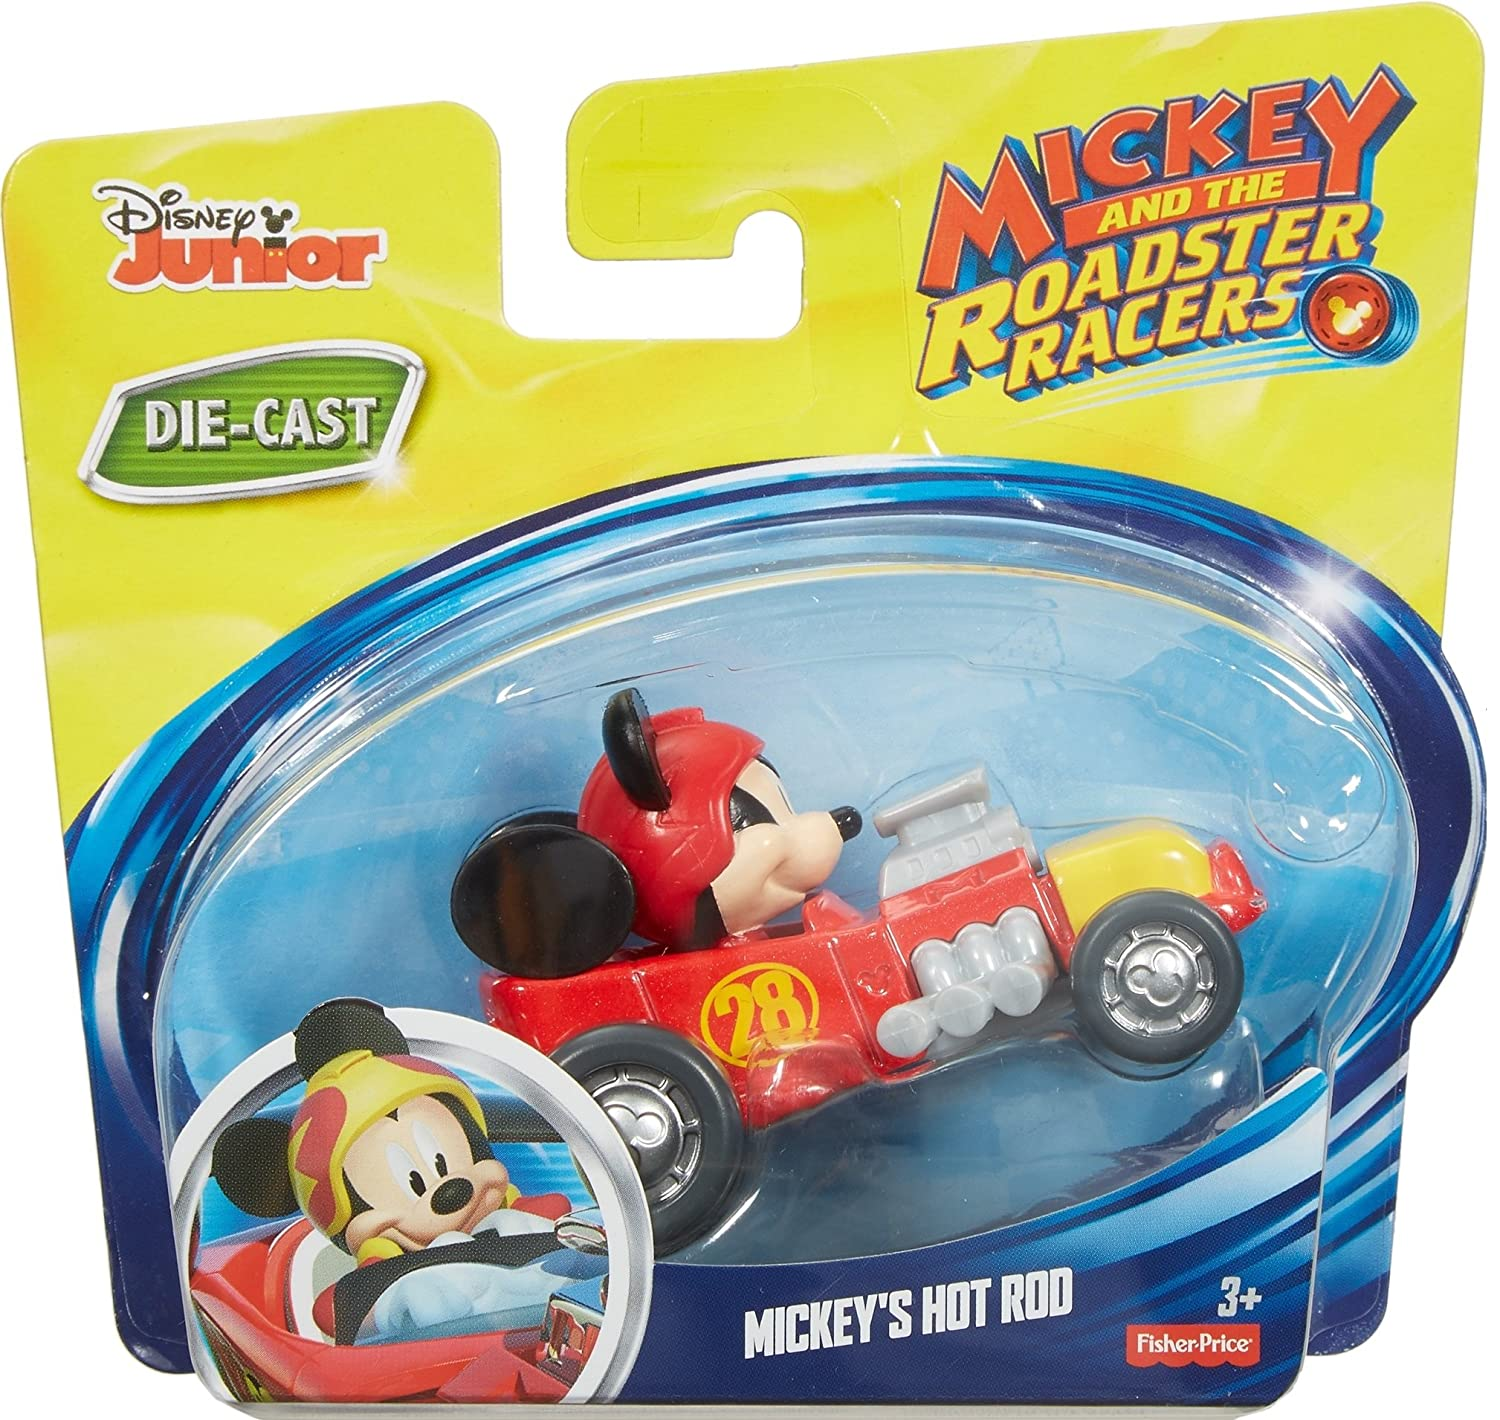 Fisher-Price Disney Mickey and the Roadster Racers - Mickeys Hot Rod Die-cast Vehicle: Amazon.es: Juguetes y juegos